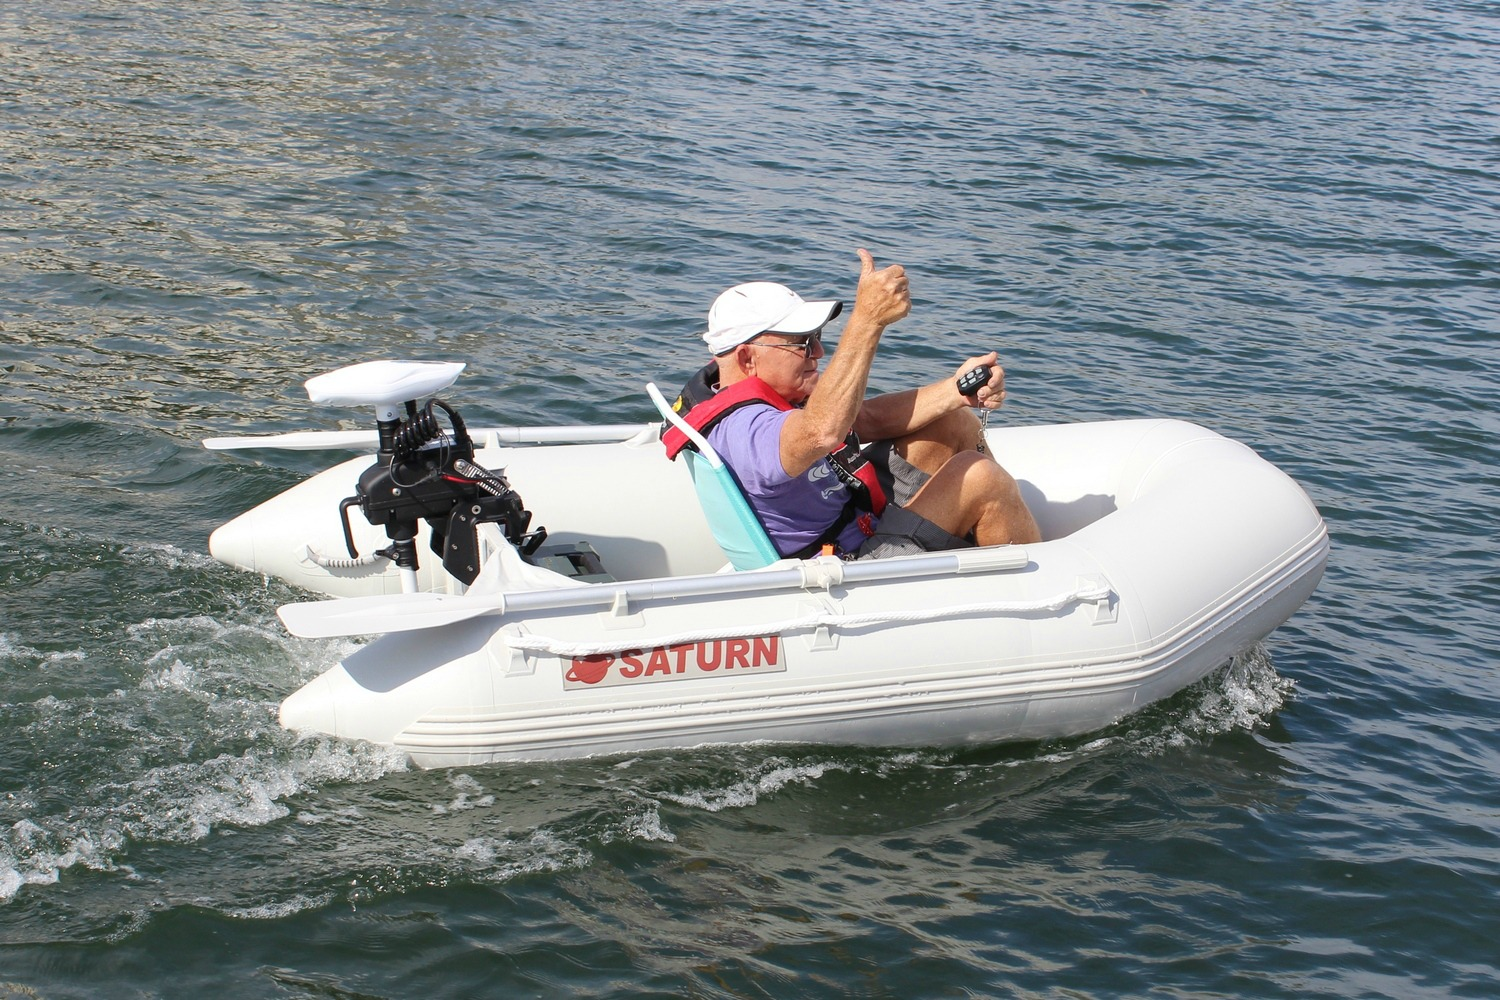 Saturn Sd230 Portable Amp Lightweight Inflatable Yacht